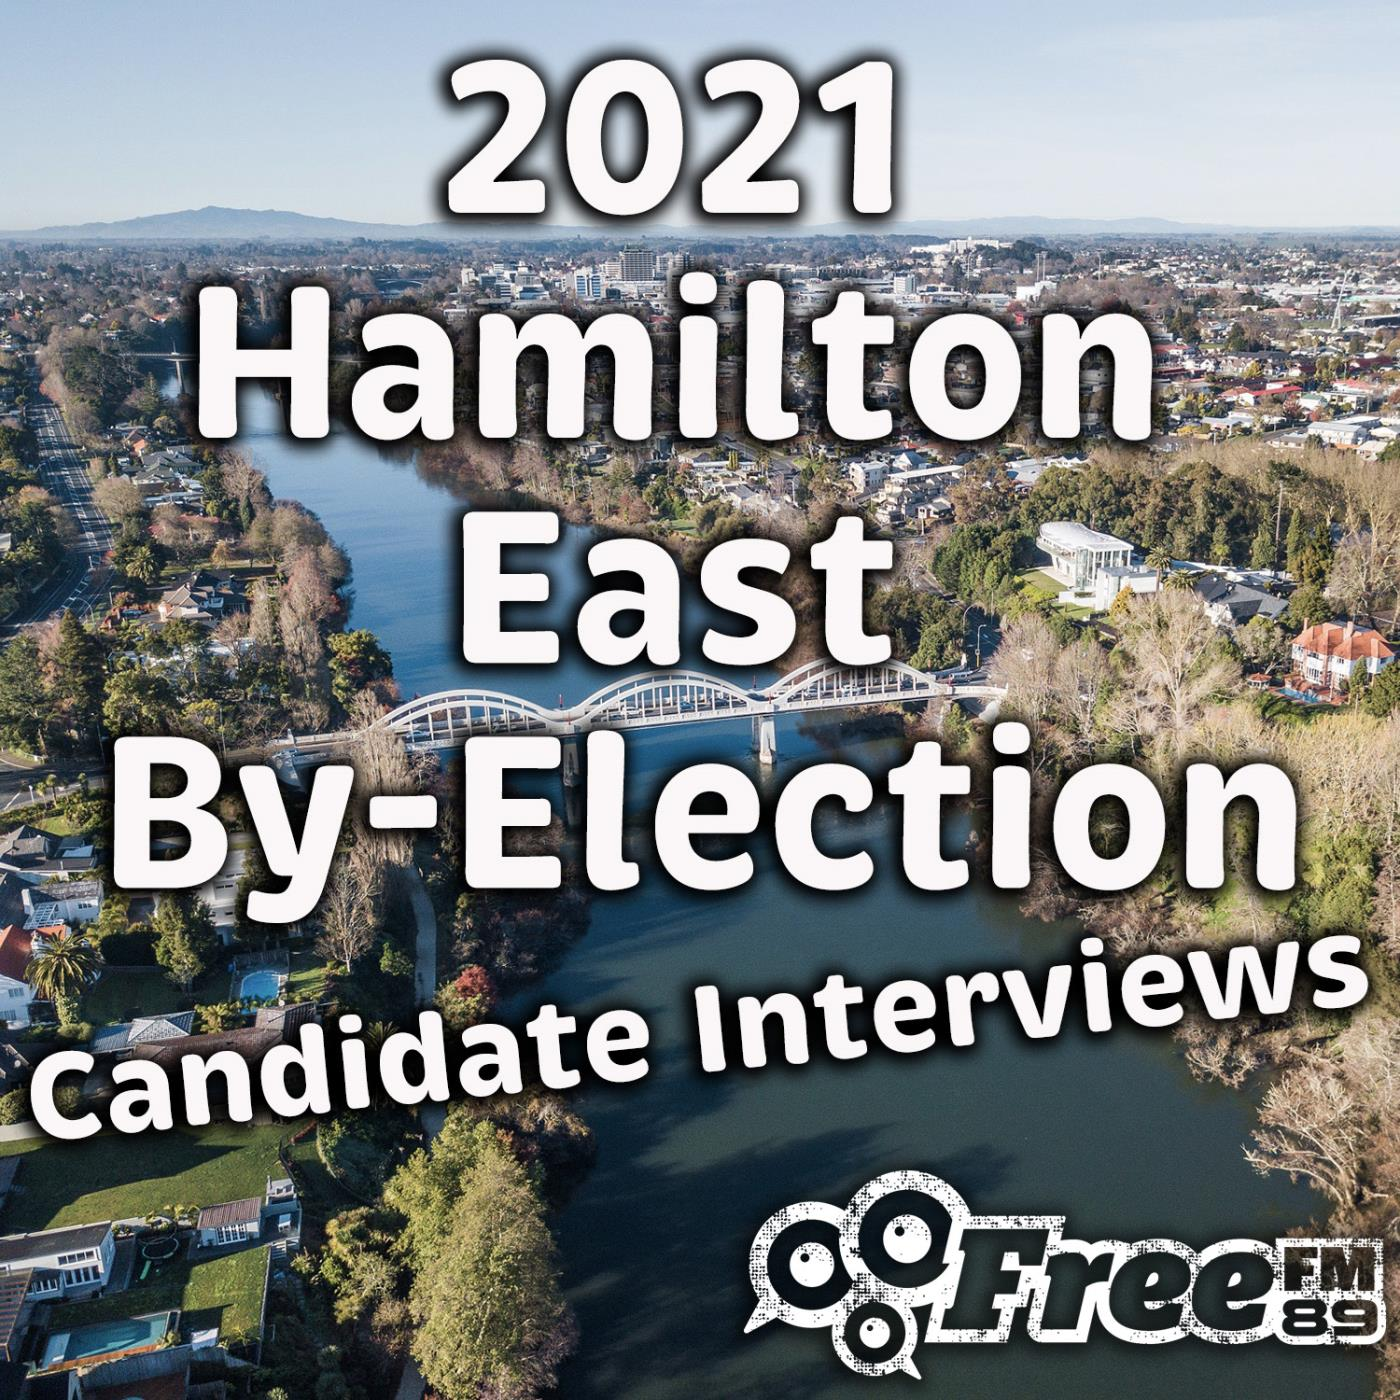 2021 Hamilton East By-Election Candidate Interviews